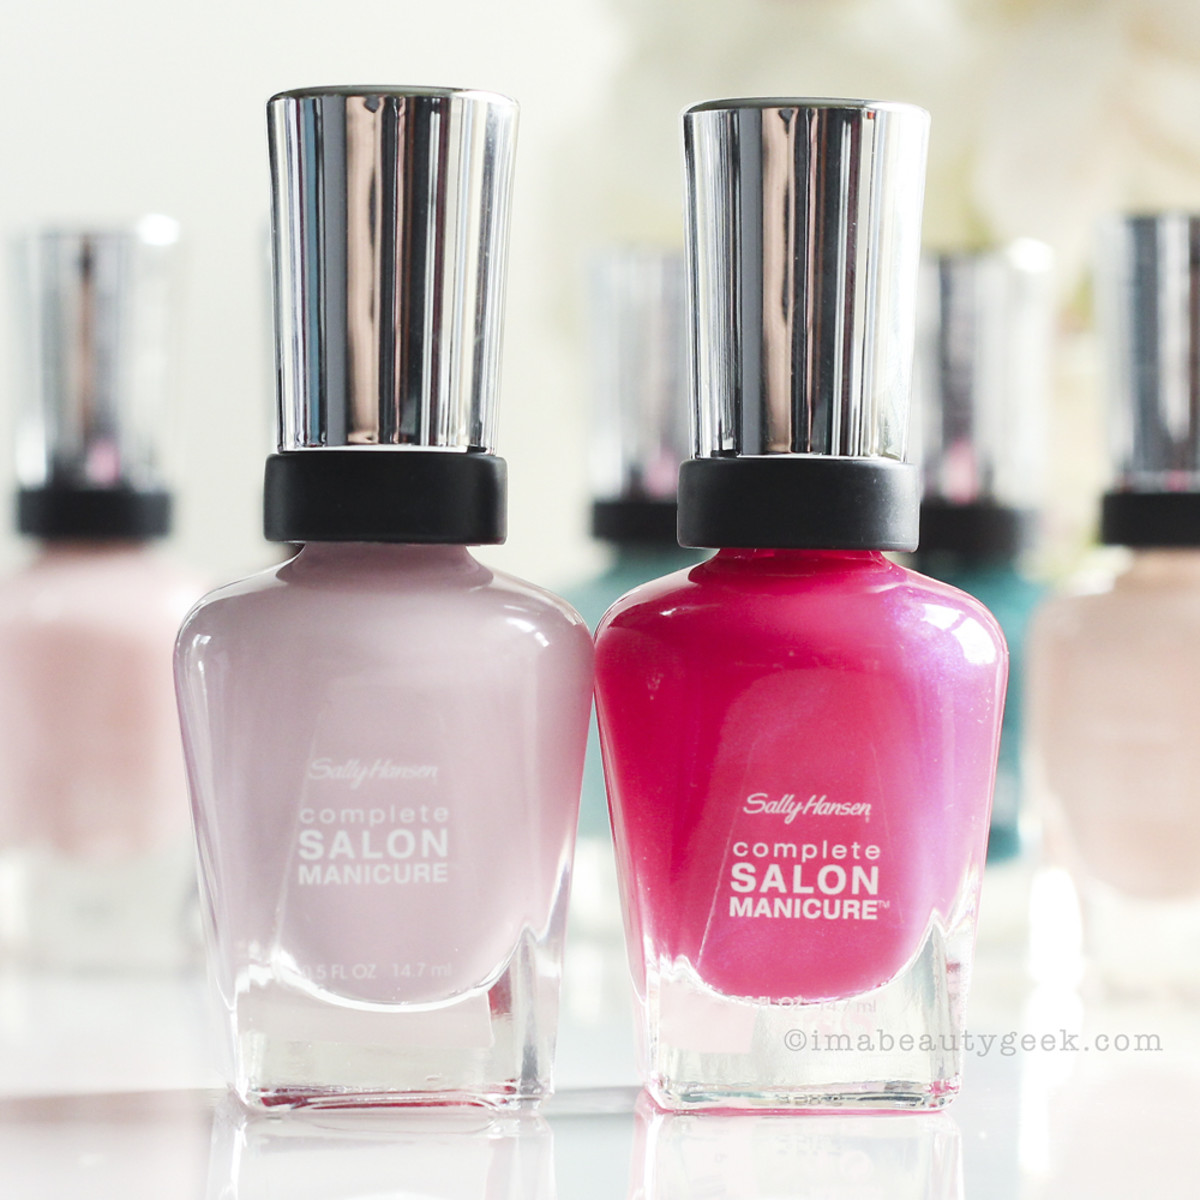 Sally Hansen Complete Salon Manicure in Pink a Card and Back to the Fuchsia